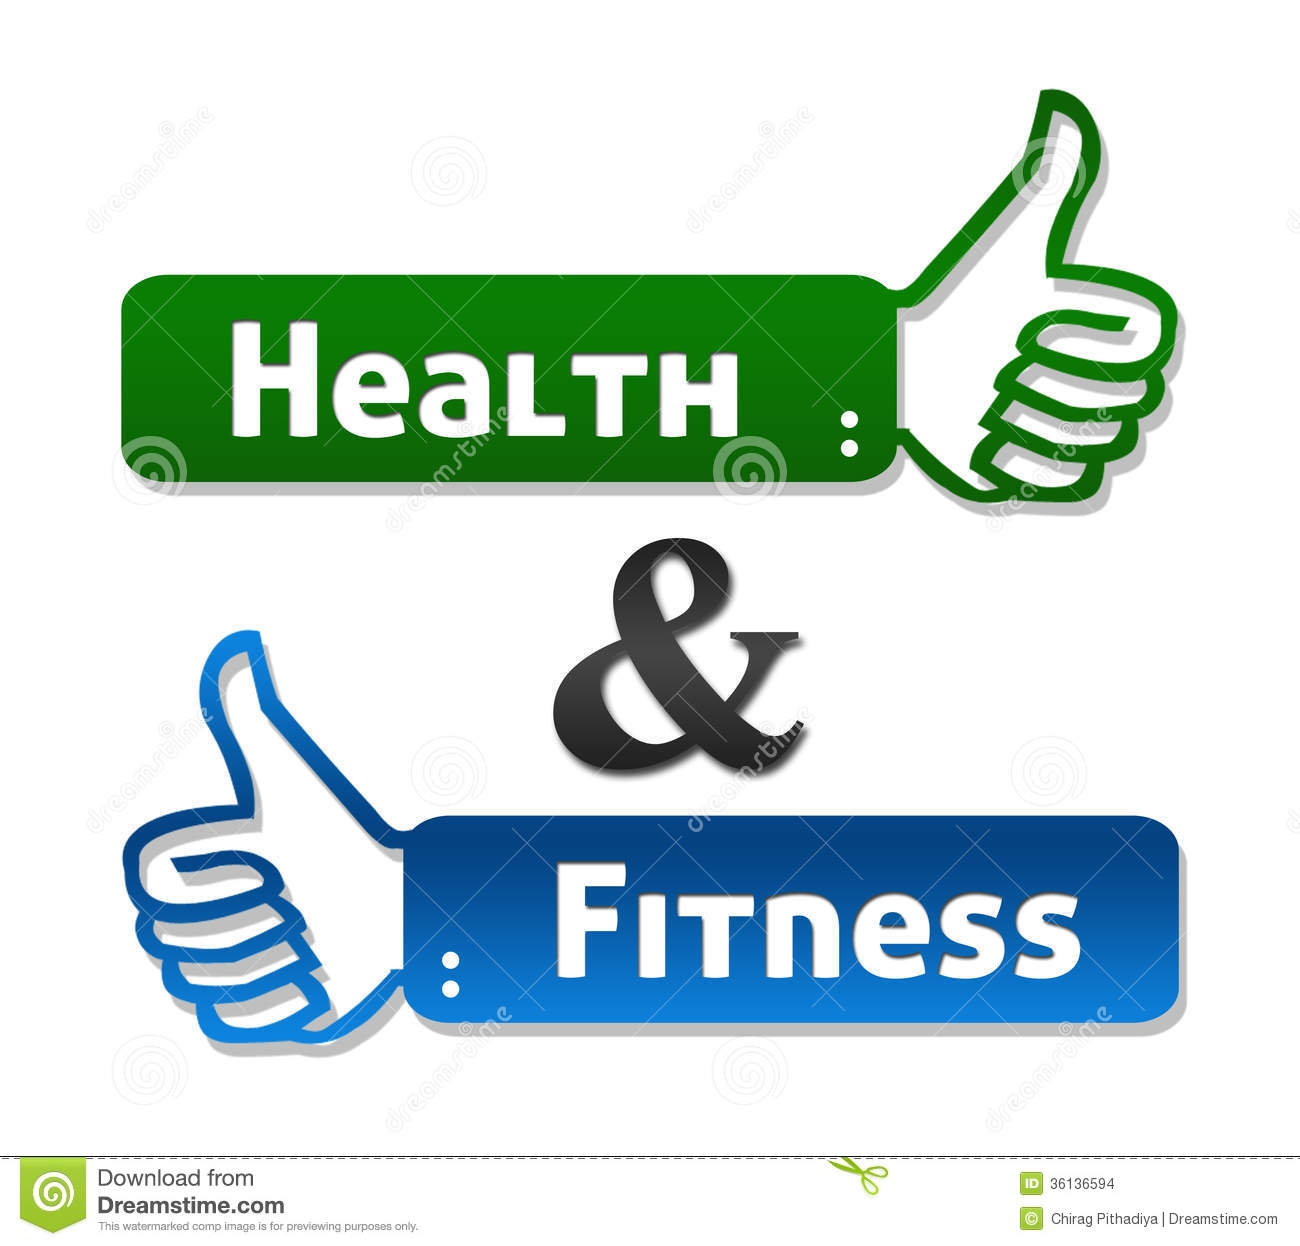 Health And Fitness Clipart.